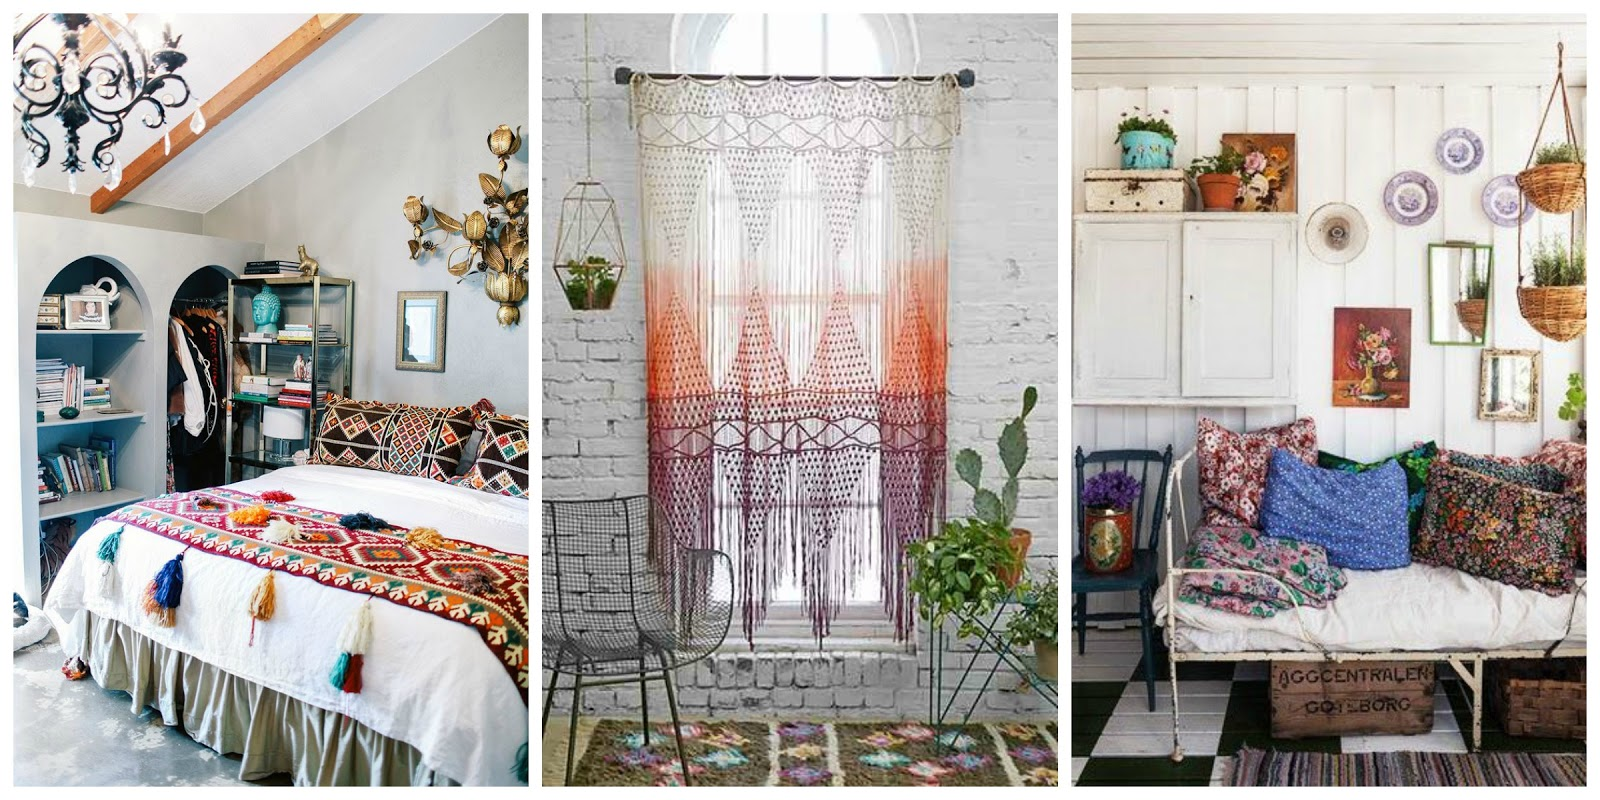 three bohemian interiors of rooms in the home